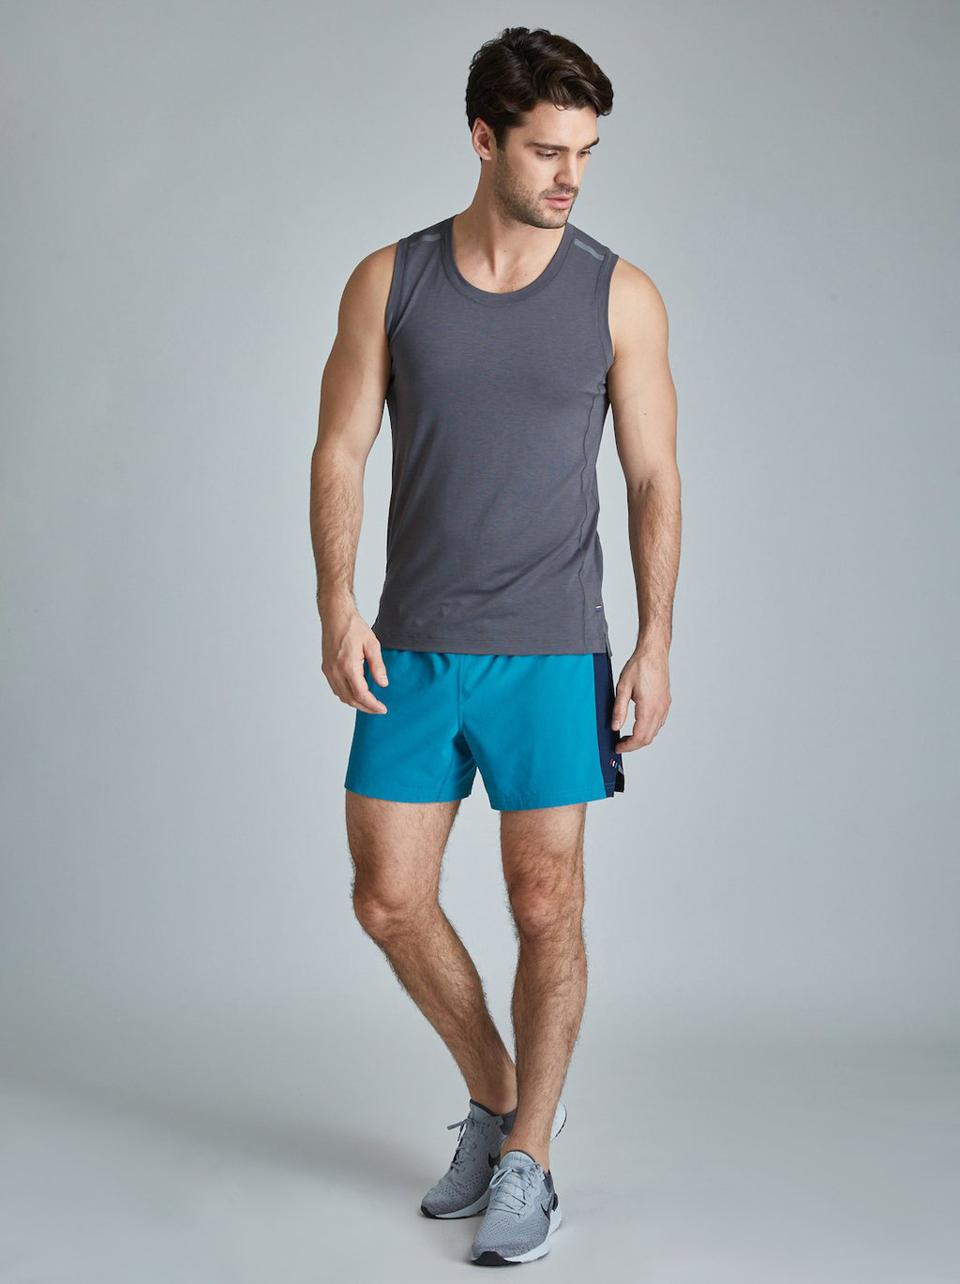 Fourlaps Extend Short & Level Tee